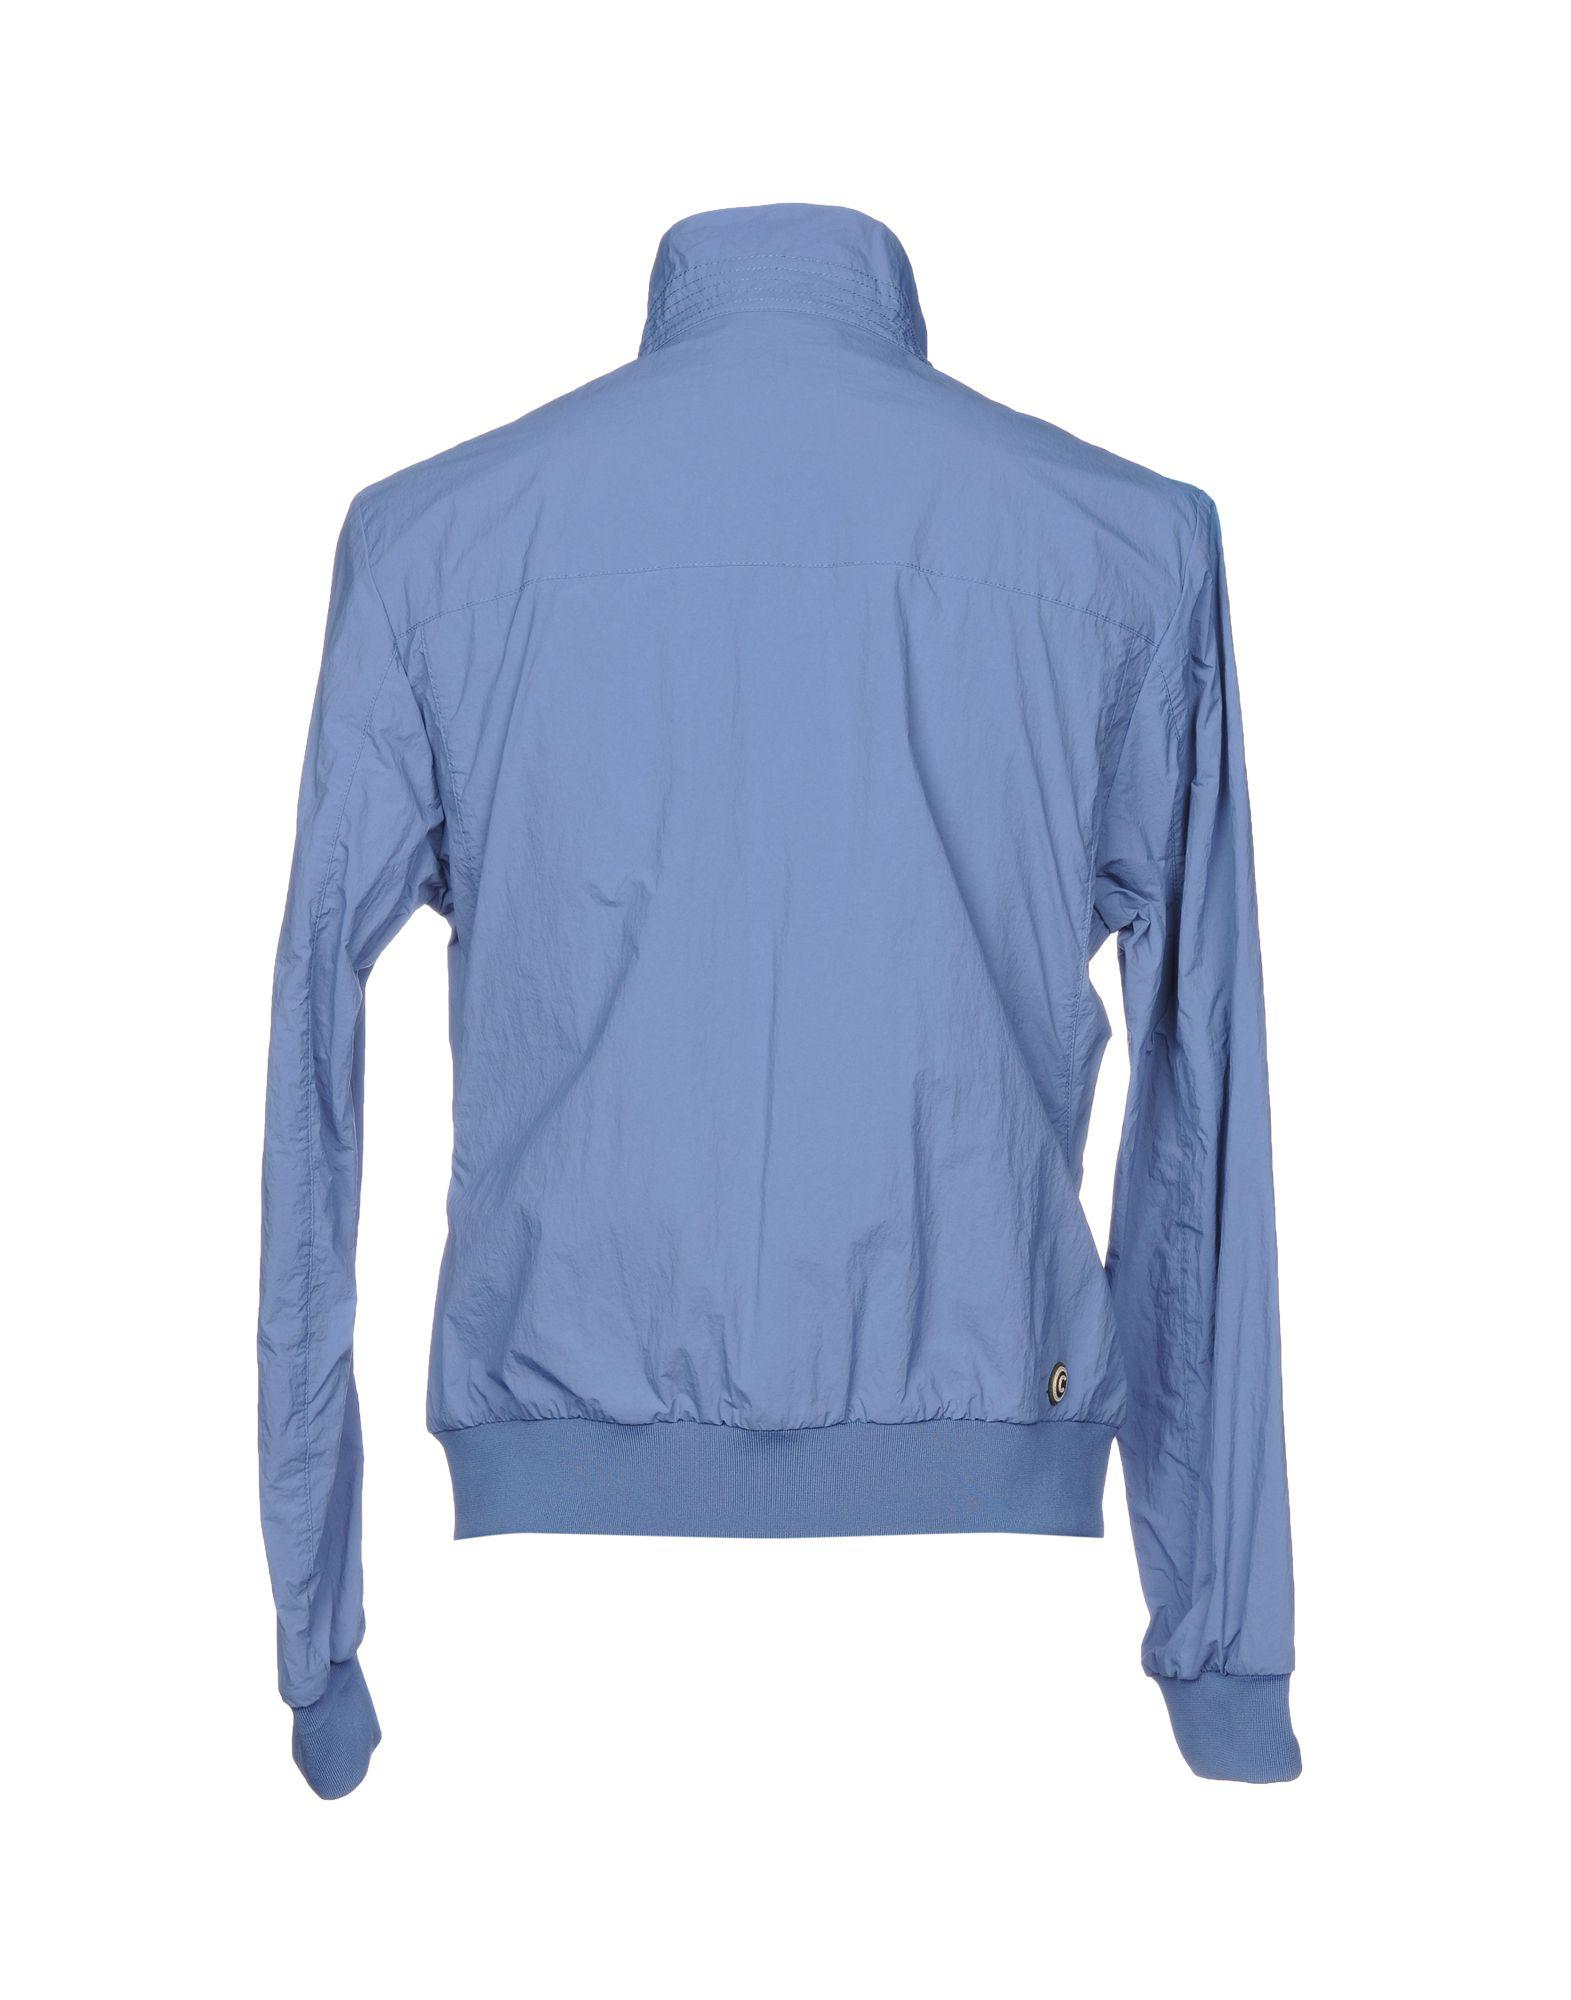 Colmar Synthetic Jacket in Pastel Blue (Blue) for Men